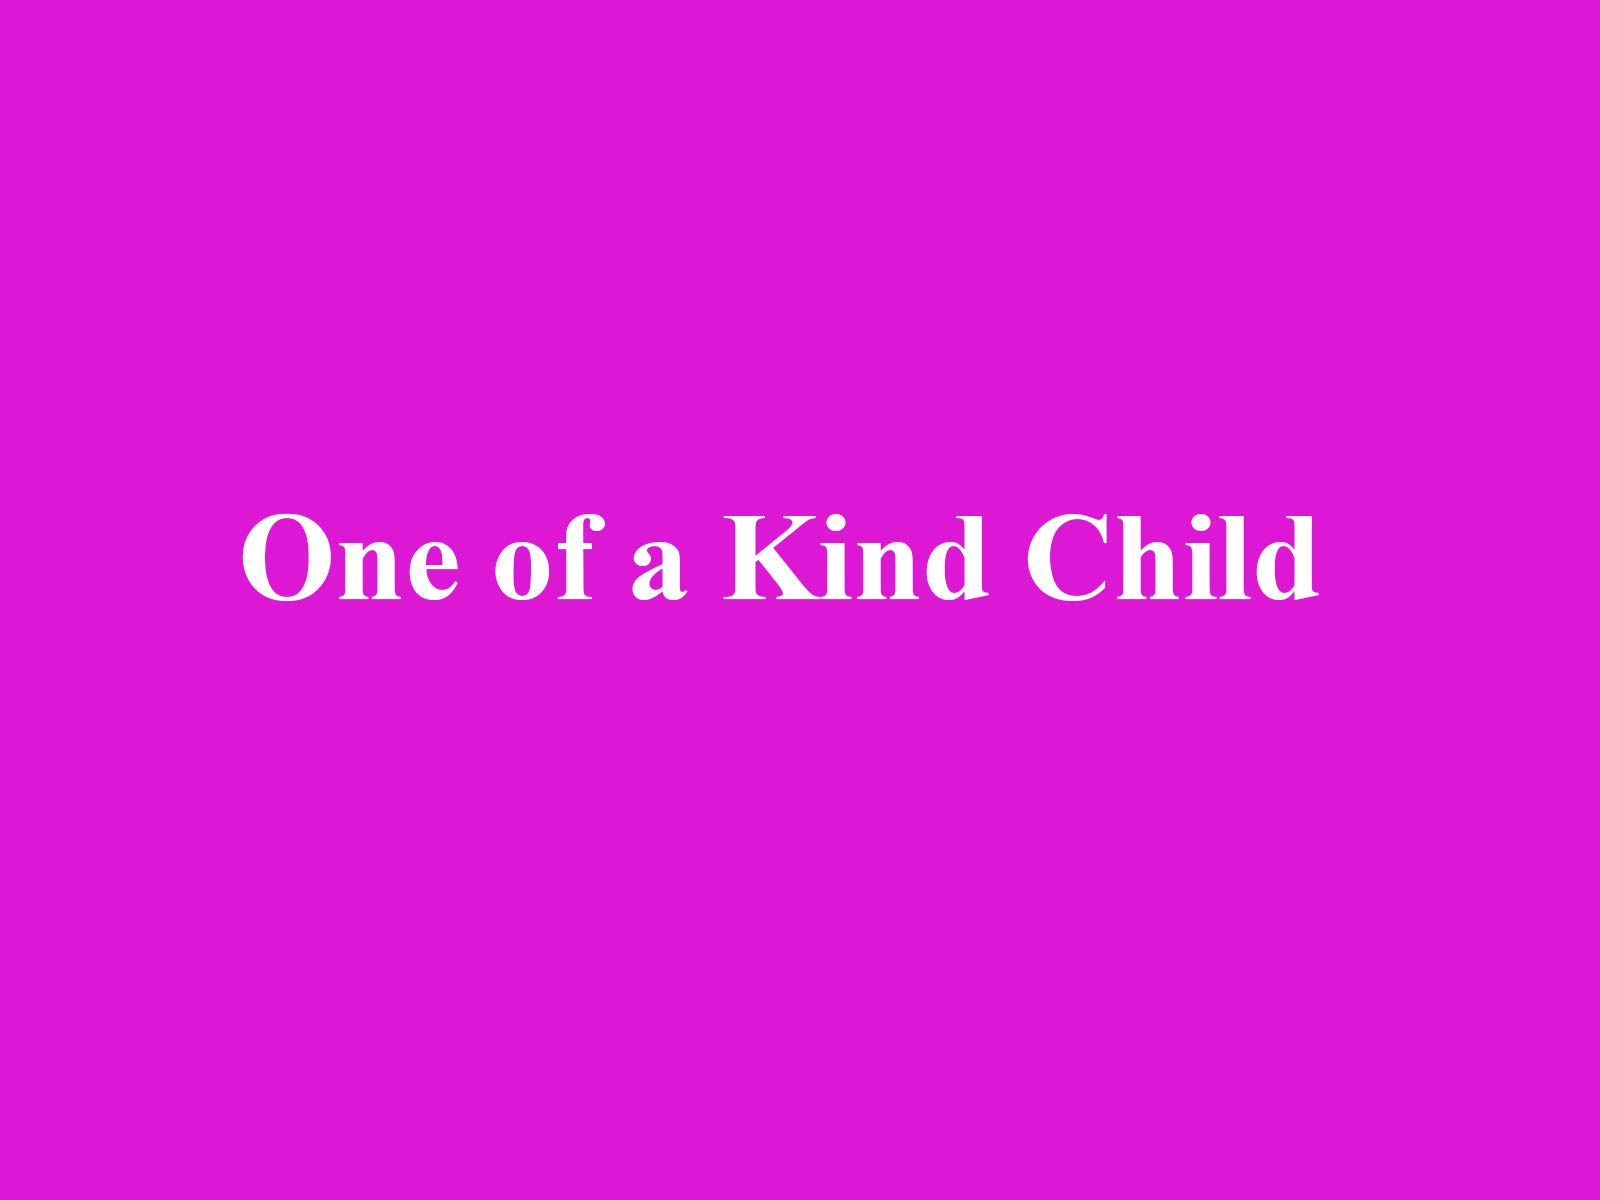 One of a Kind Child - Season 1